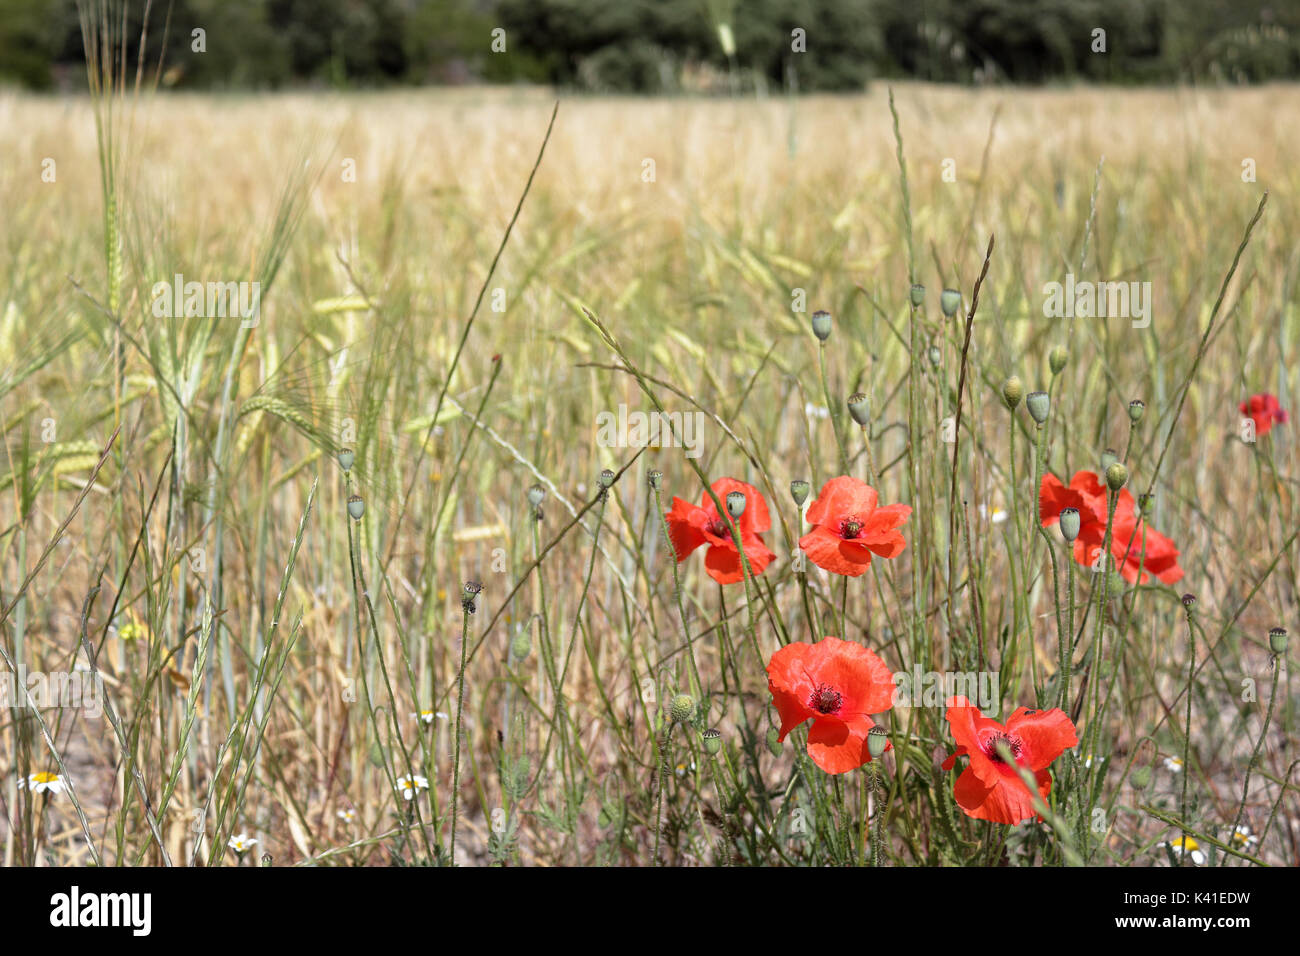 A red poppy flower with a yellow and green corn field background Stock Photo